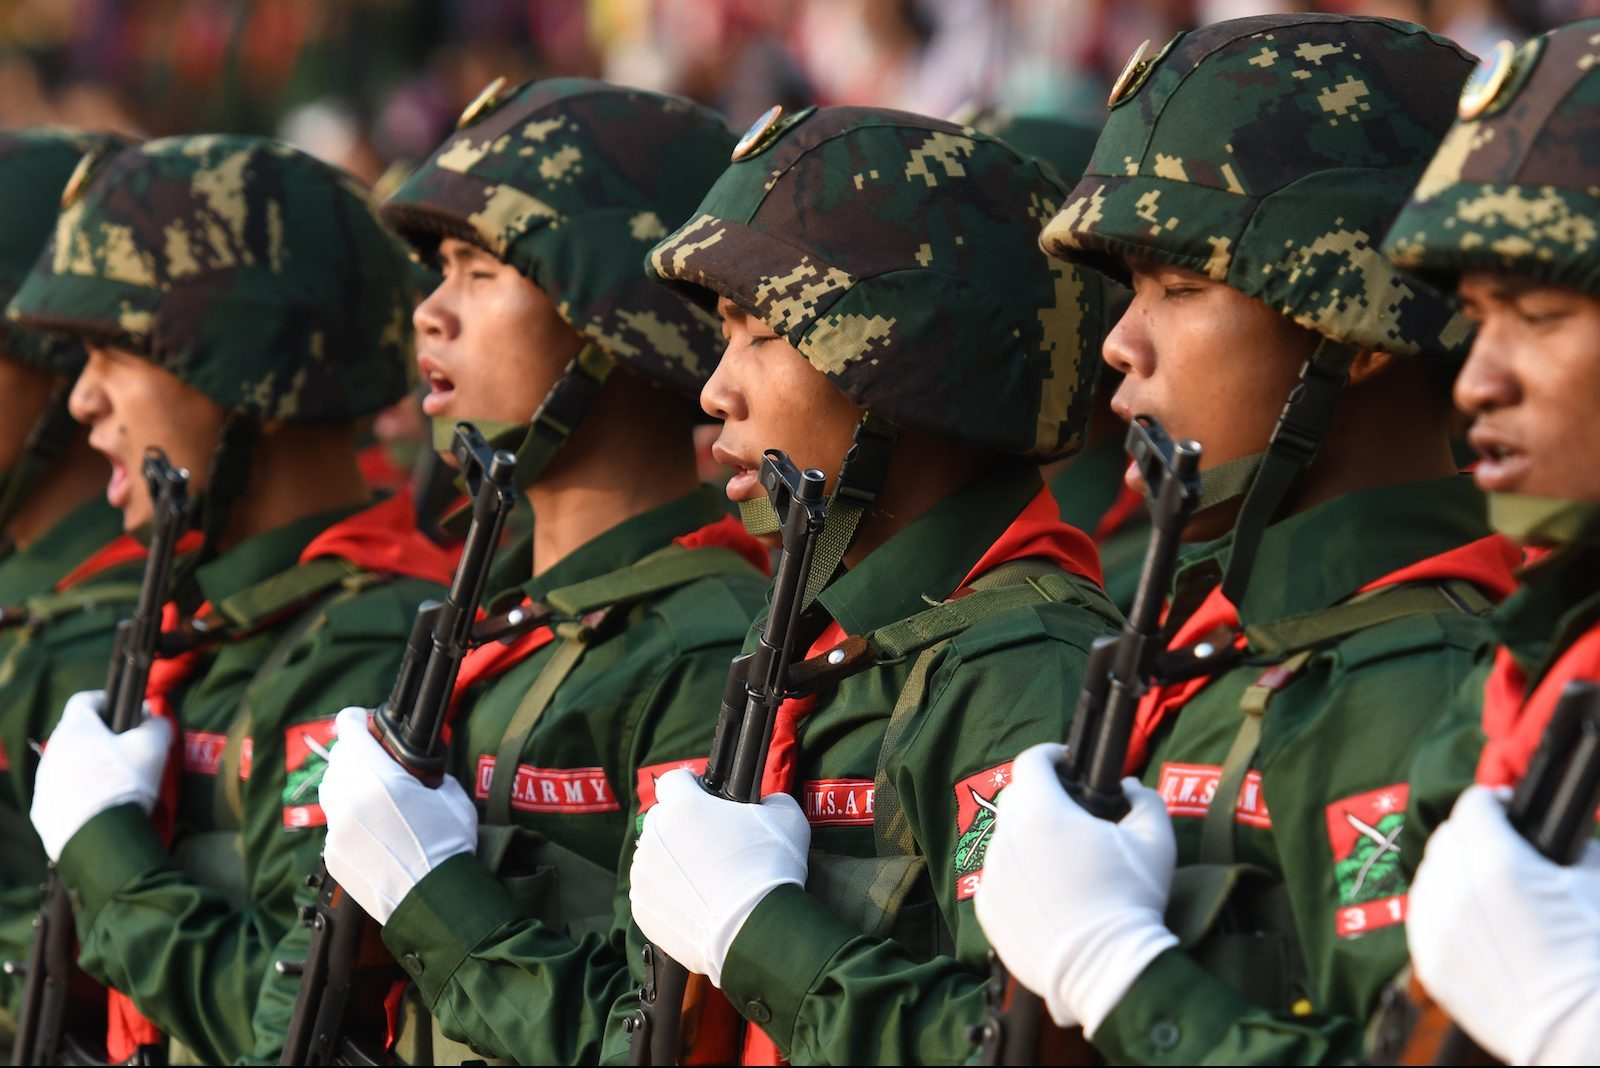 China's loose arms still fuel Myanmar's civil wars